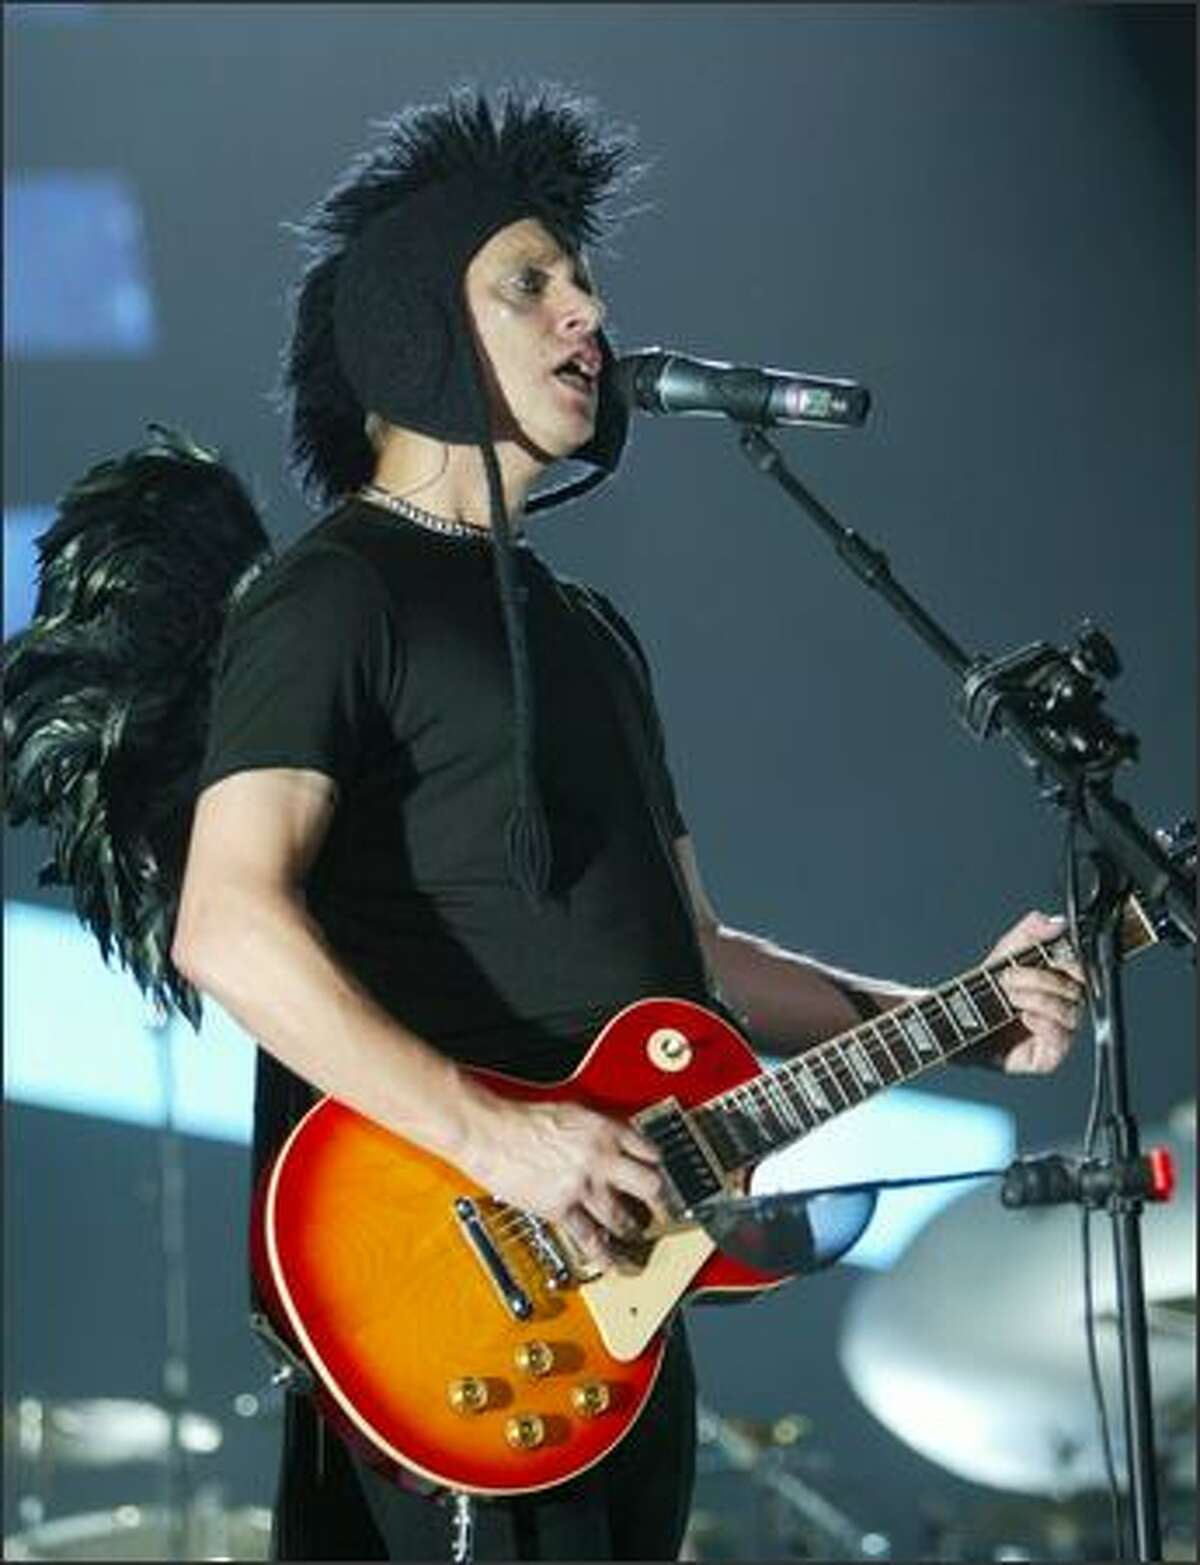 Depeche Mode's Martin Gore, on guitar, sings